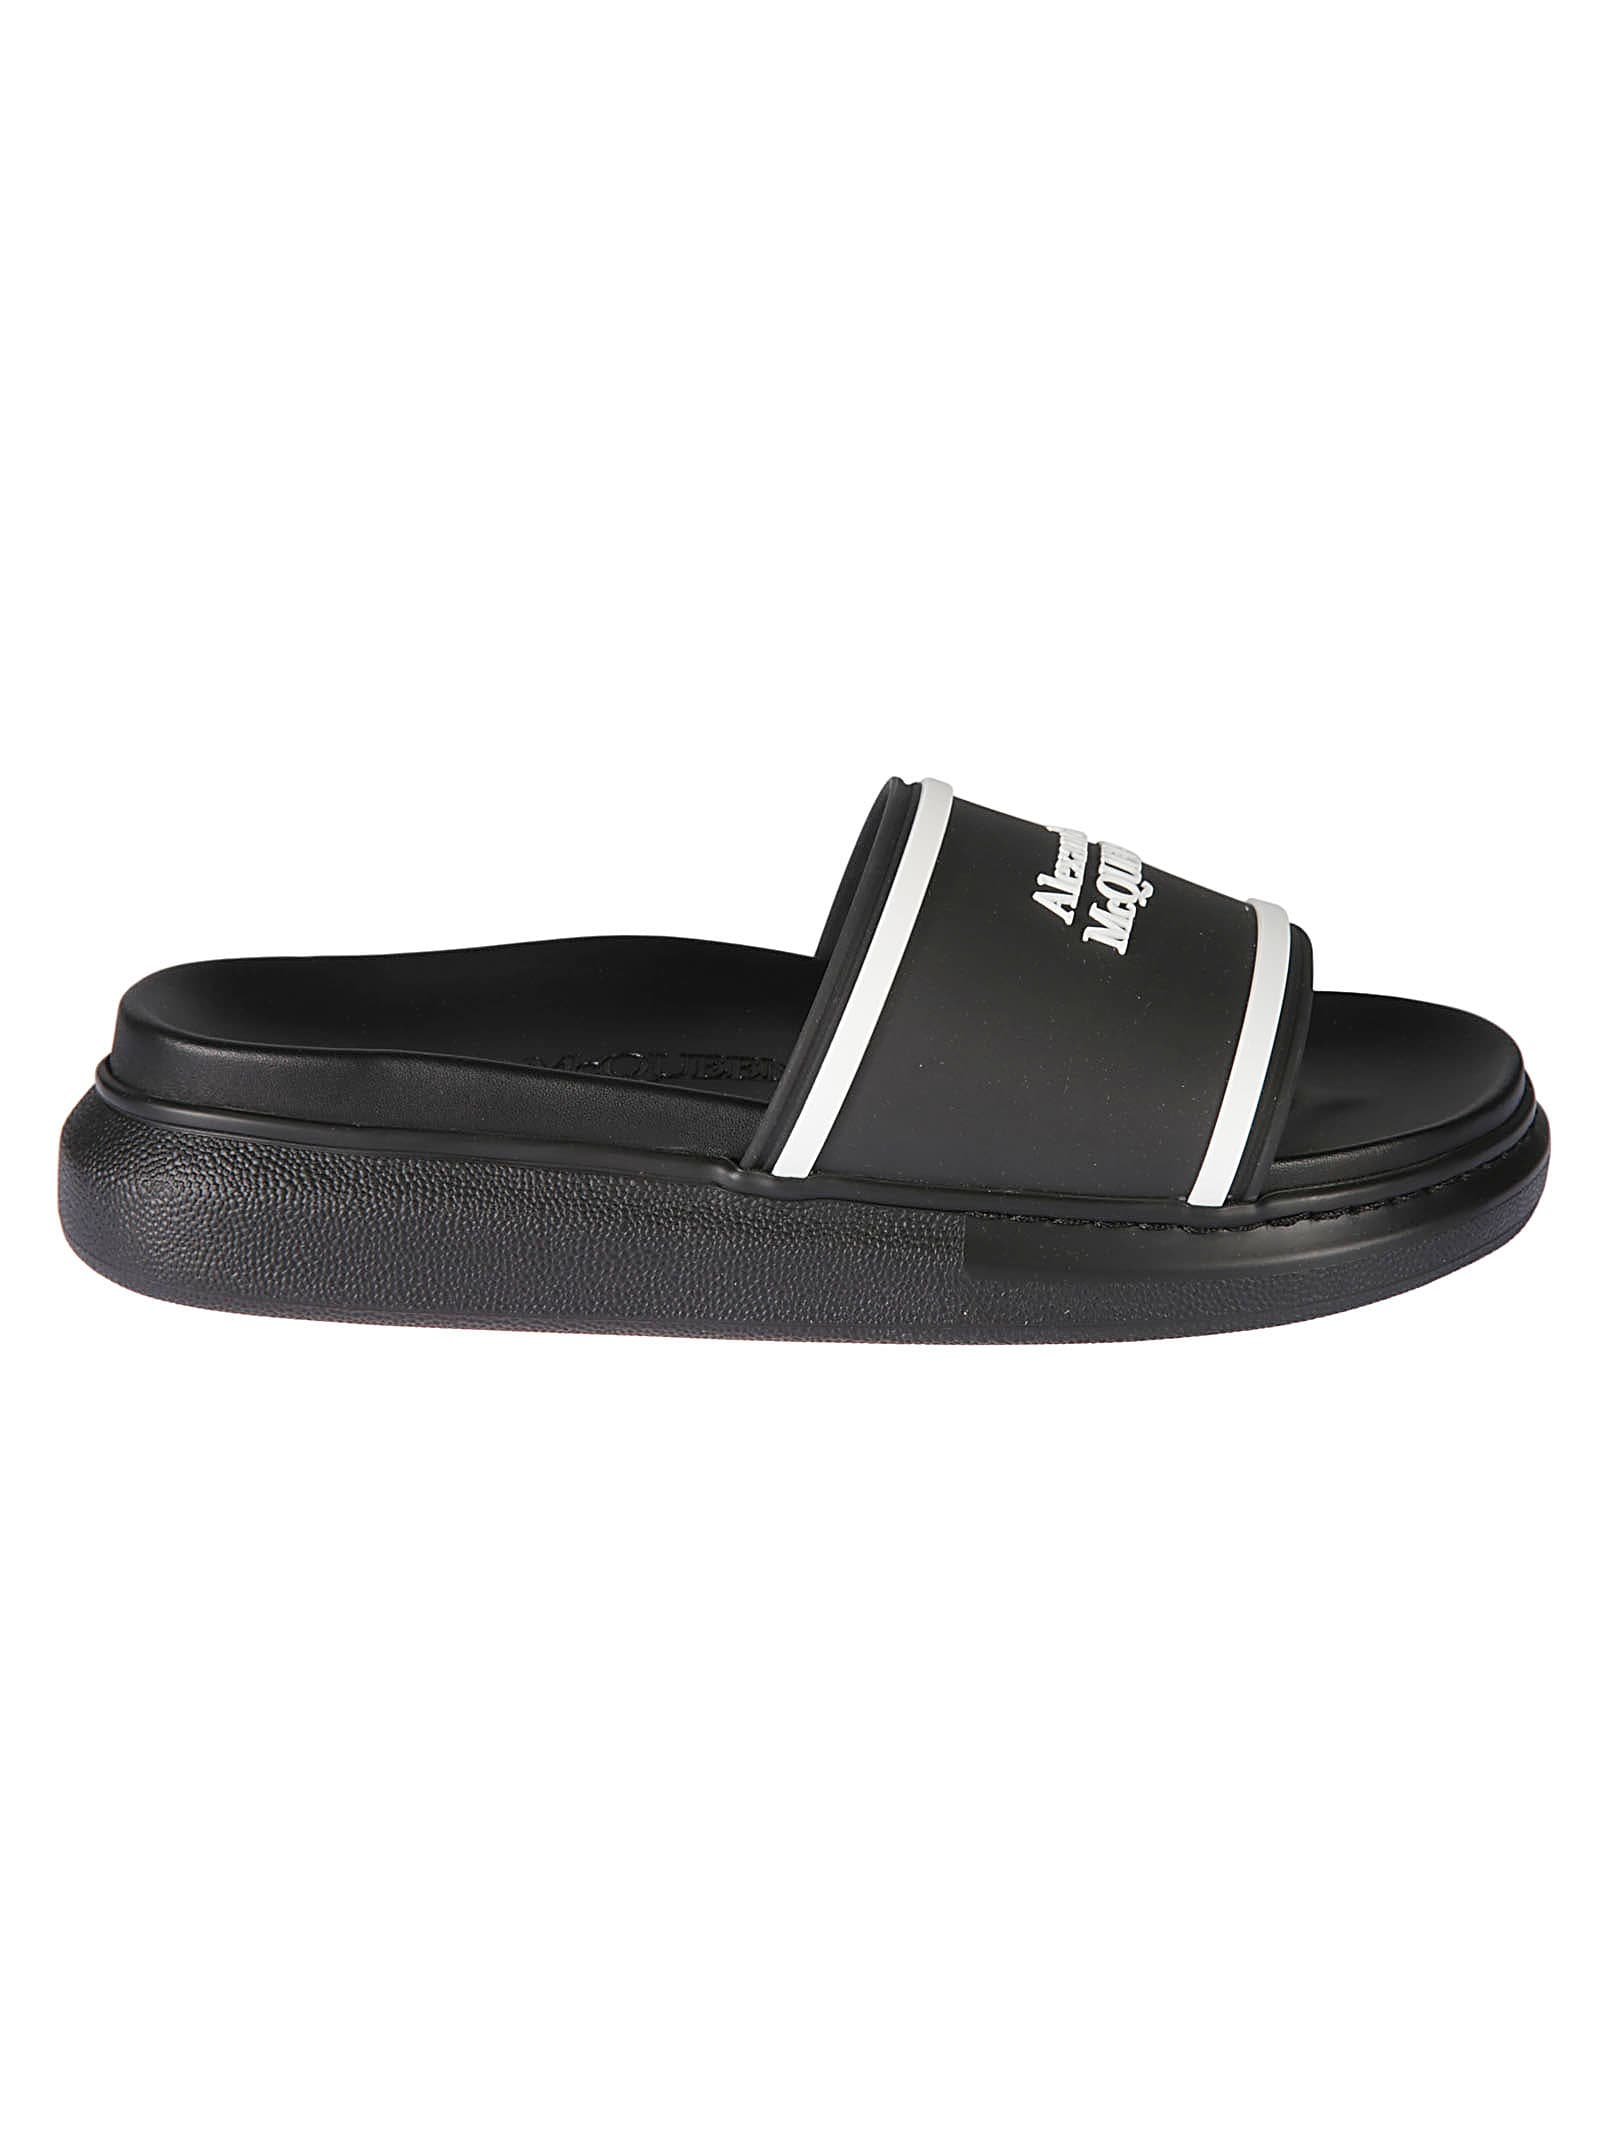 Buy Alexander McQueen Band Sliders online, shop Alexander McQueen shoes with free shipping